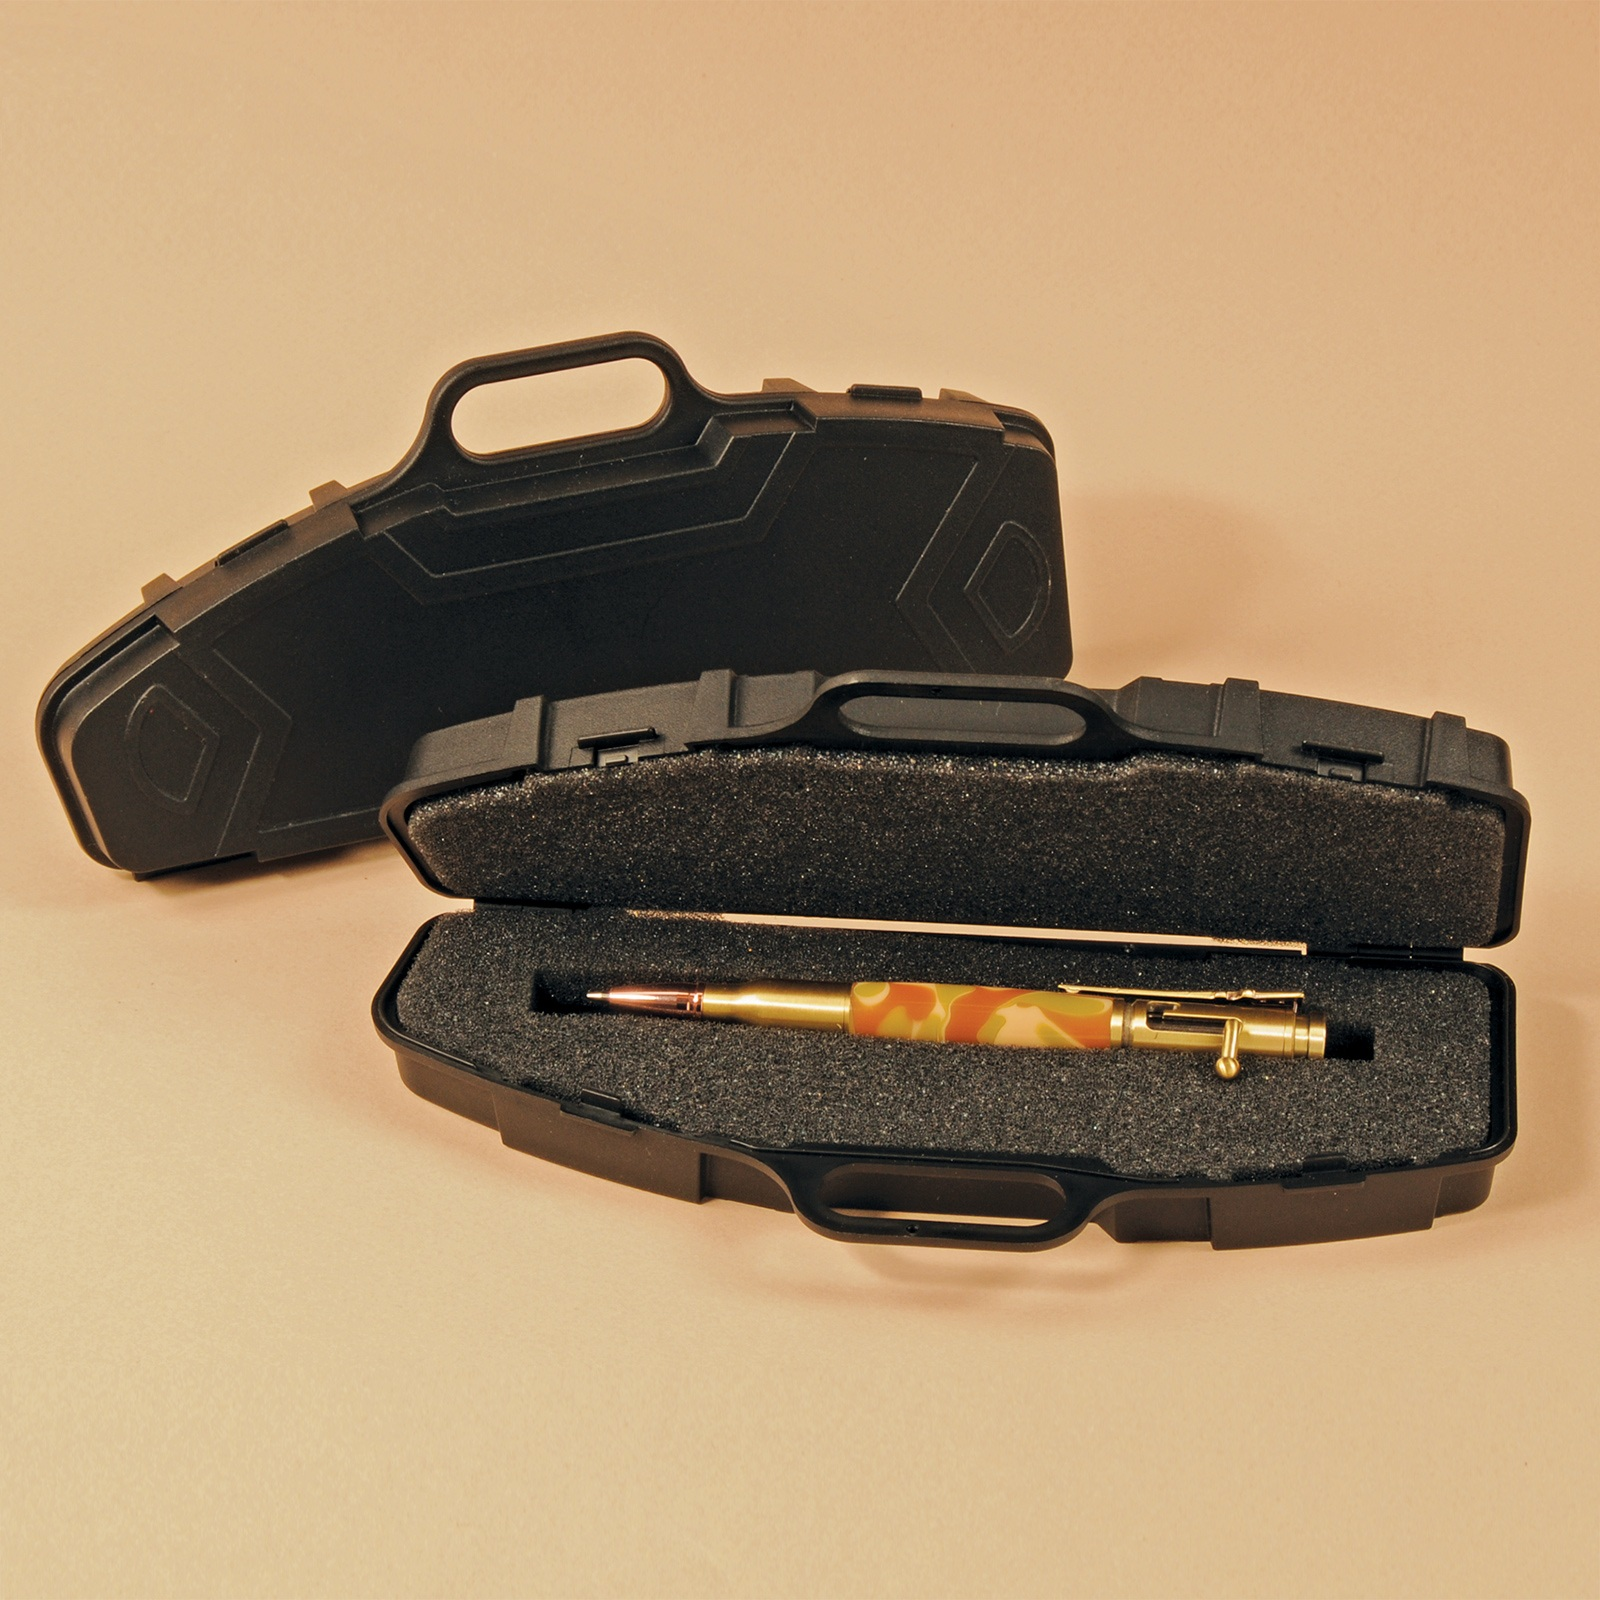 Rifle Case Pen Box in Black at Penn State Industries